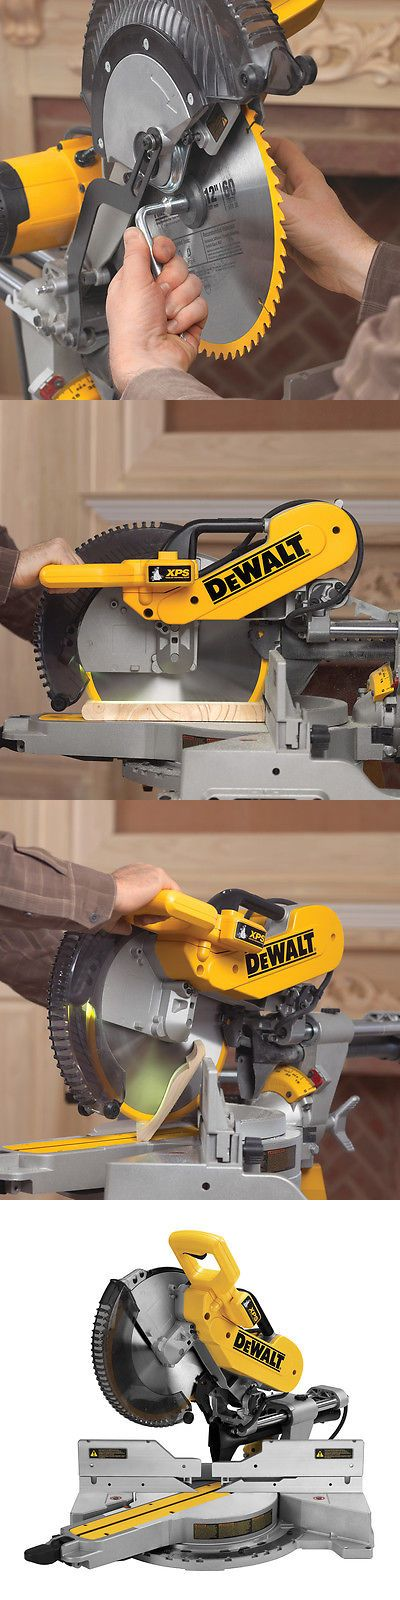 Miter and Chop Saws 20787: Dewalt 12-In 15-Amp Dual Bevel Sliding Compound Miter Saw -> BUY IT NOW ONLY: $500 on eBay!